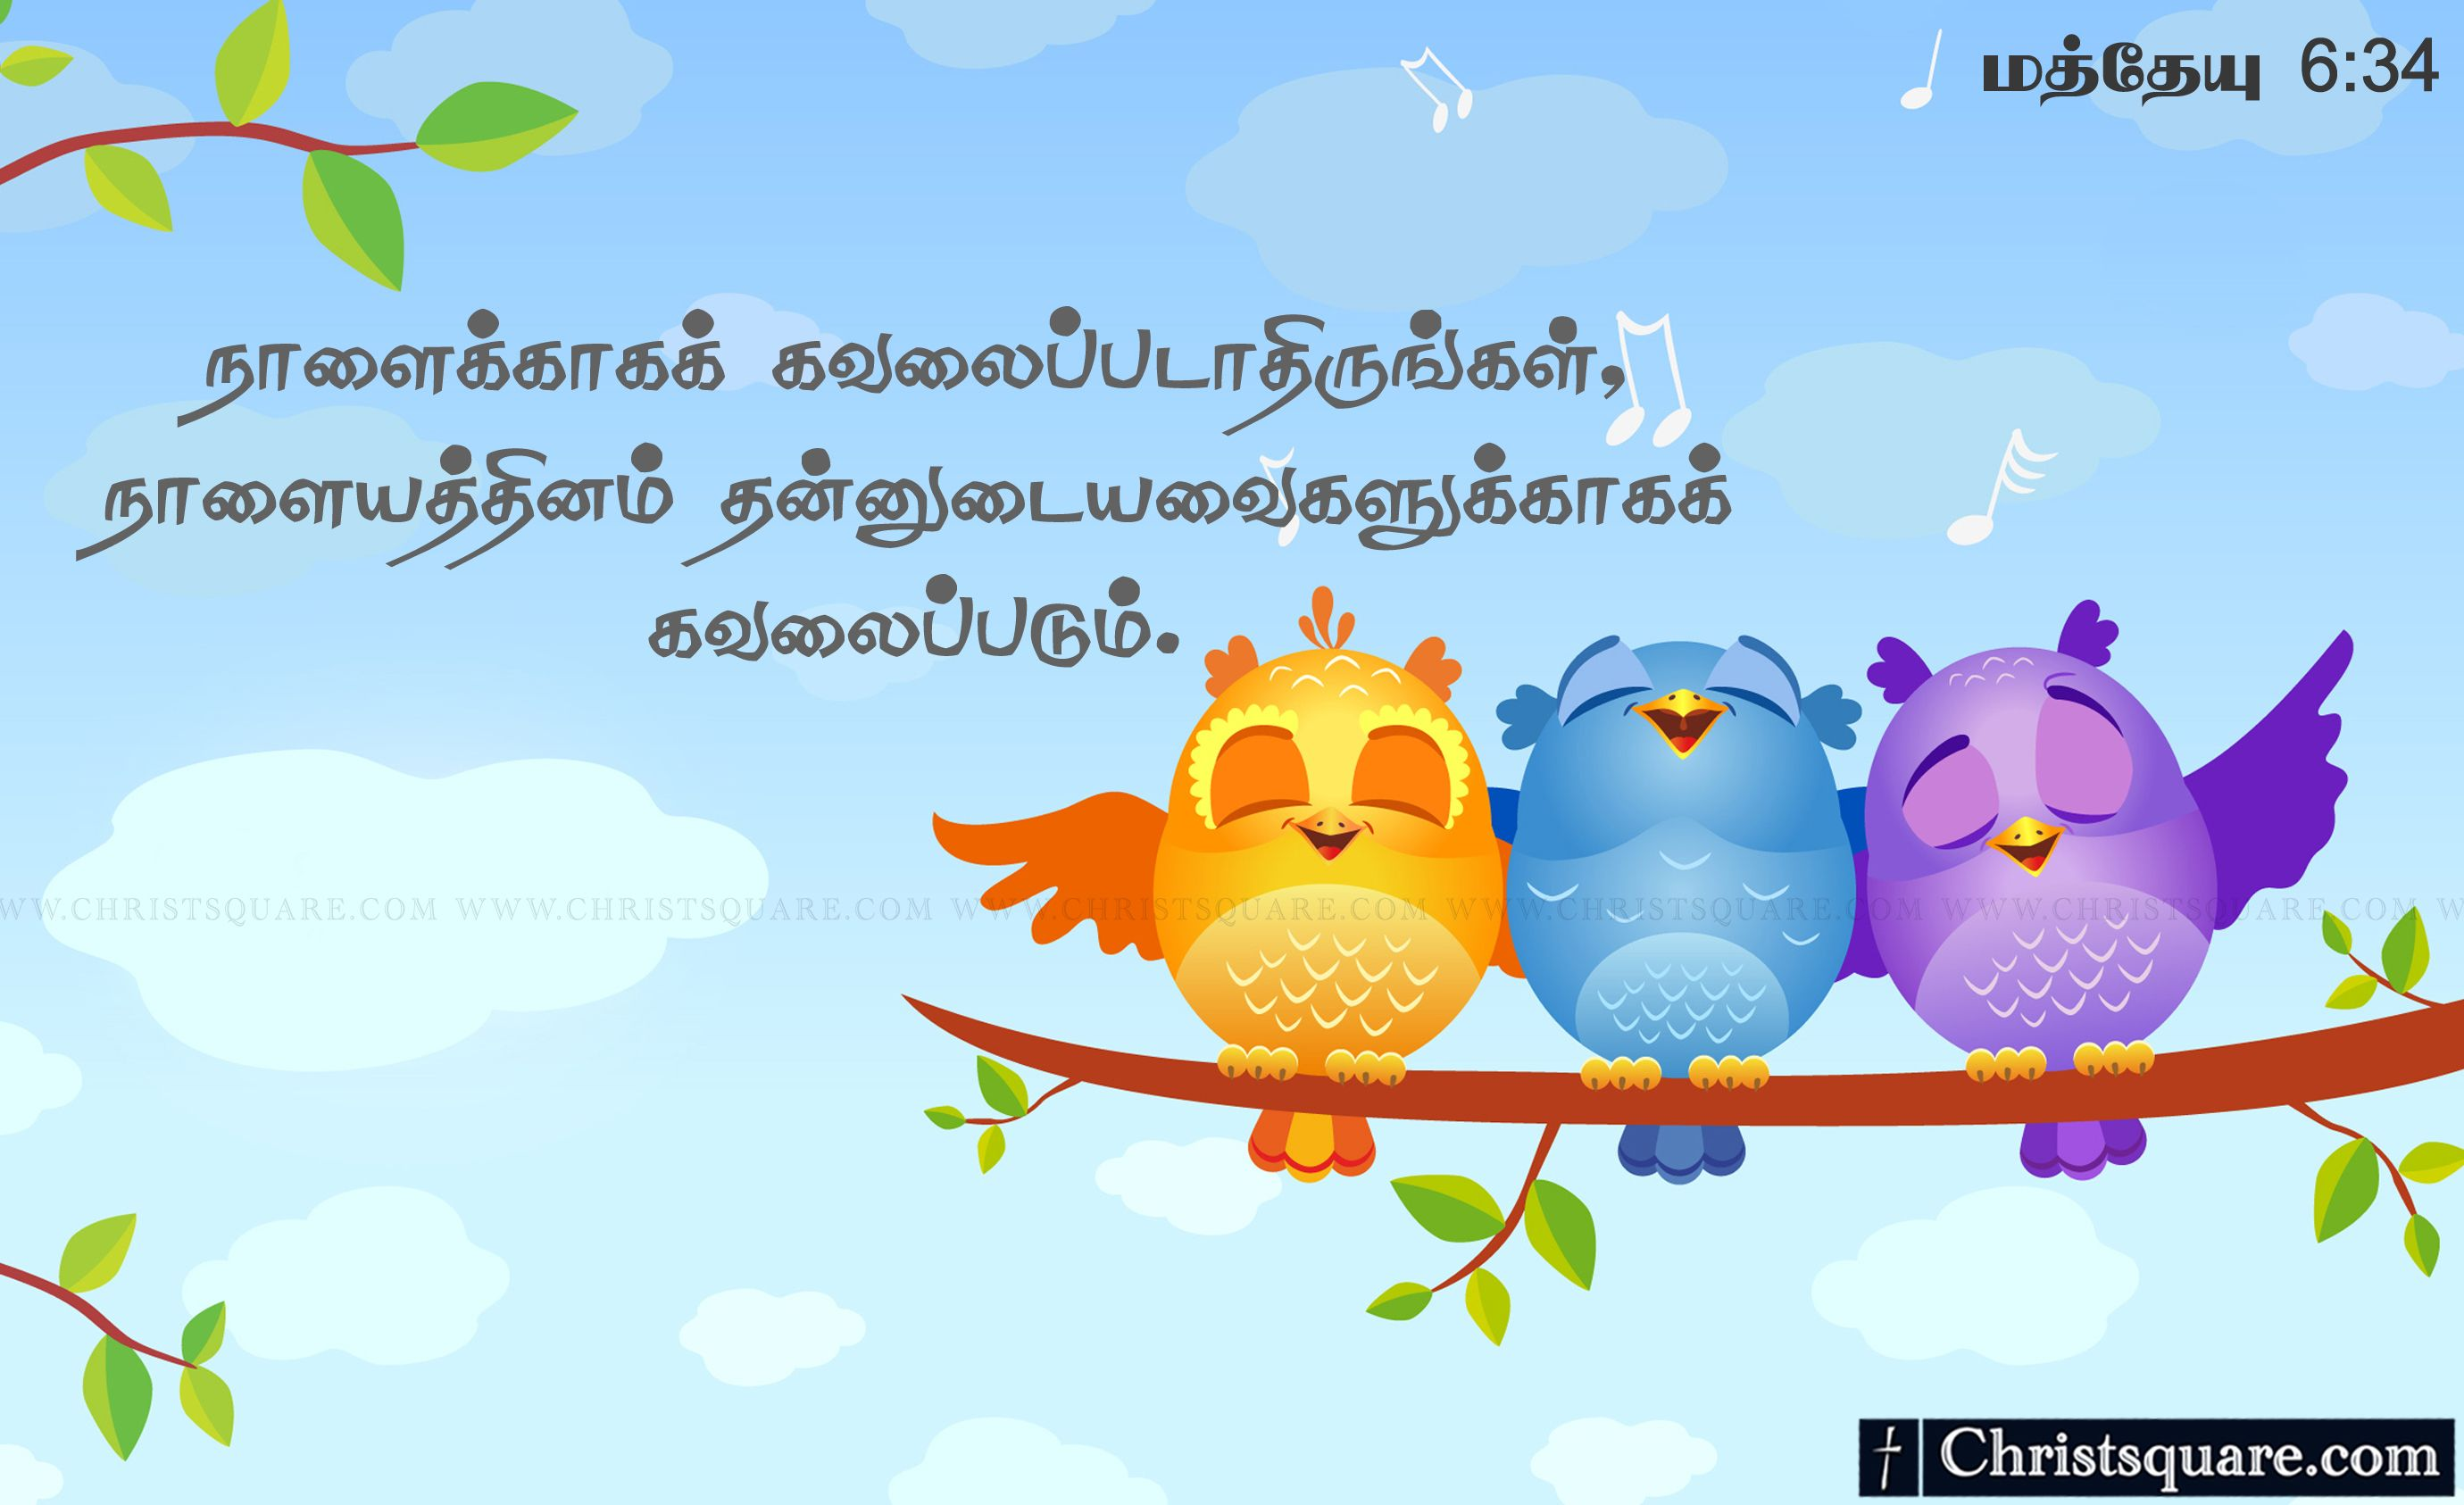 tamil bible words wallpapers - photo #28